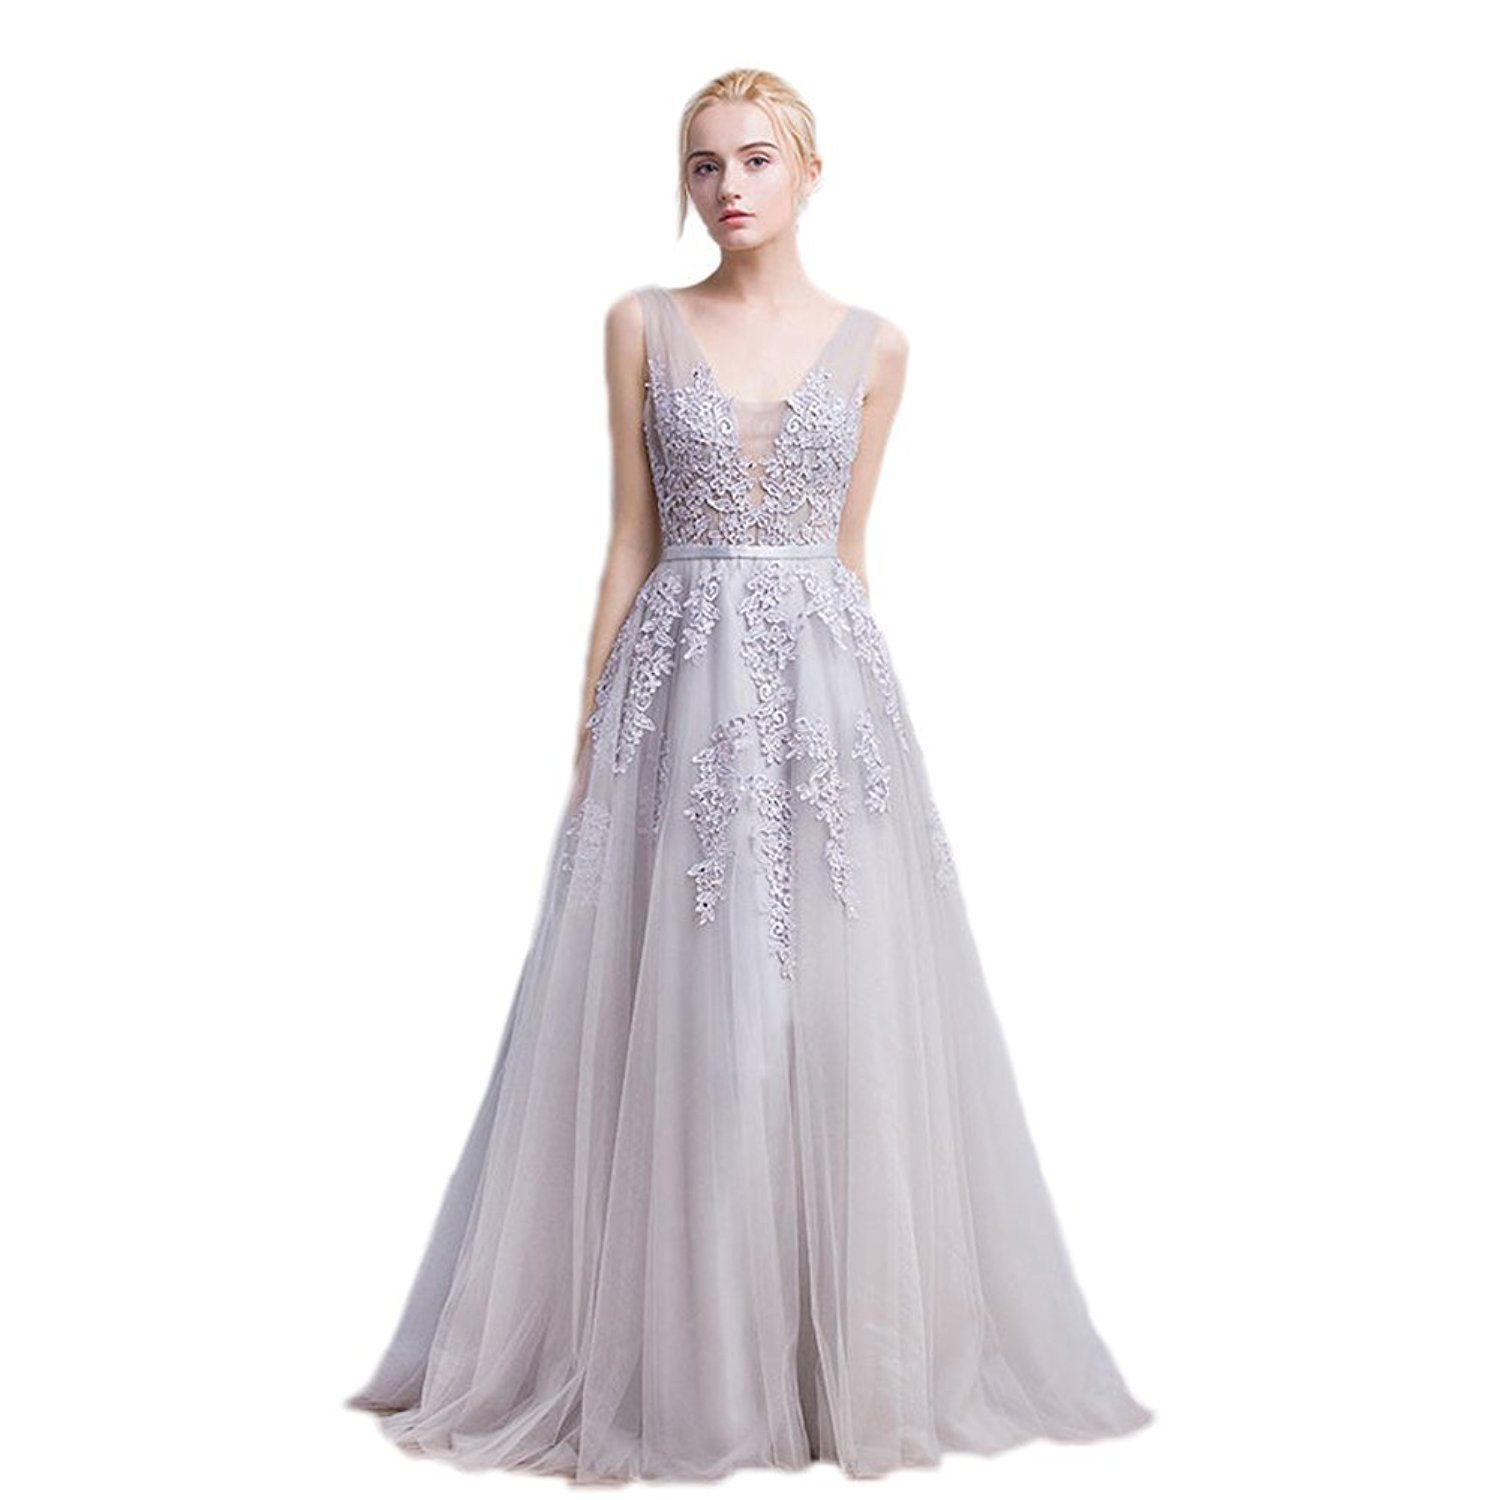 2ccb6b374f3 Vimans Women s 2016 Elegant Long Sequined Lace Prom Dress Evening Gowns